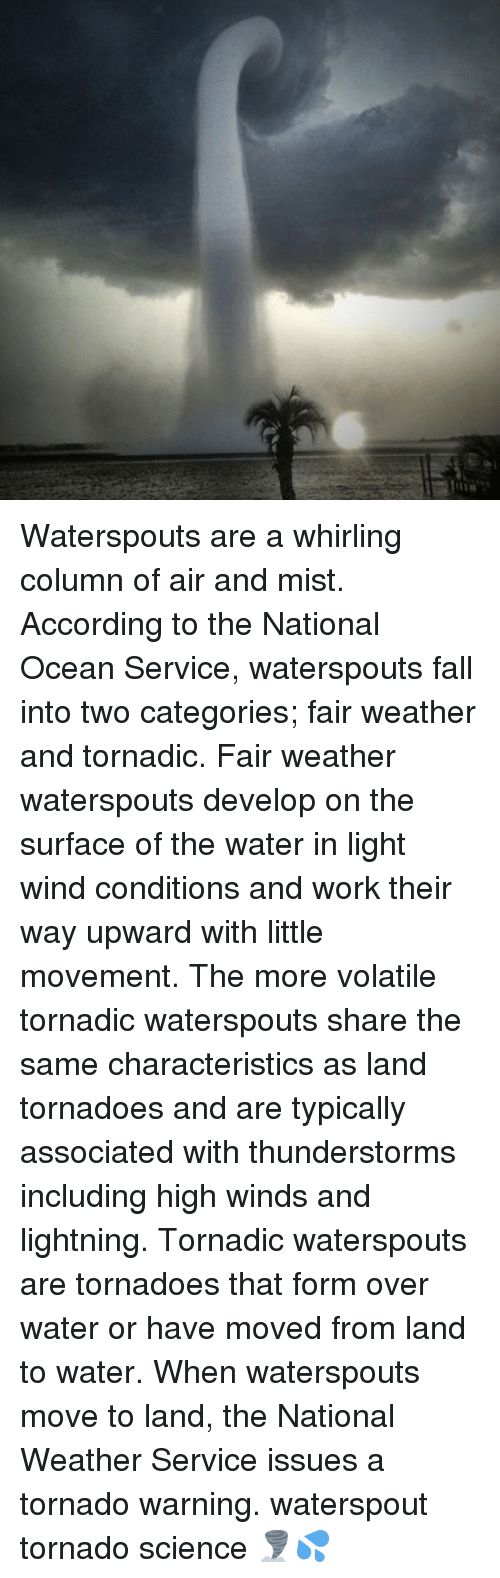 Fall, Memes, and Work: Waterspouts are a whirling column of air and mist. According to the National Ocean Service, waterspouts fall into two categories; fair weather and tornadic. Fair weather waterspouts develop on the surface of the water in light wind conditions and work their way upward with little movement. The more volatile tornadic waterspouts share the same characteristics as land tornadoes and are typically associated with thunderstorms including high winds and lightning. Tornadic waterspouts are tornadoes that form over water or have moved from land to water. When waterspouts move to land, the National Weather Service issues a tornado warning. waterspout tornado science 🌪💦